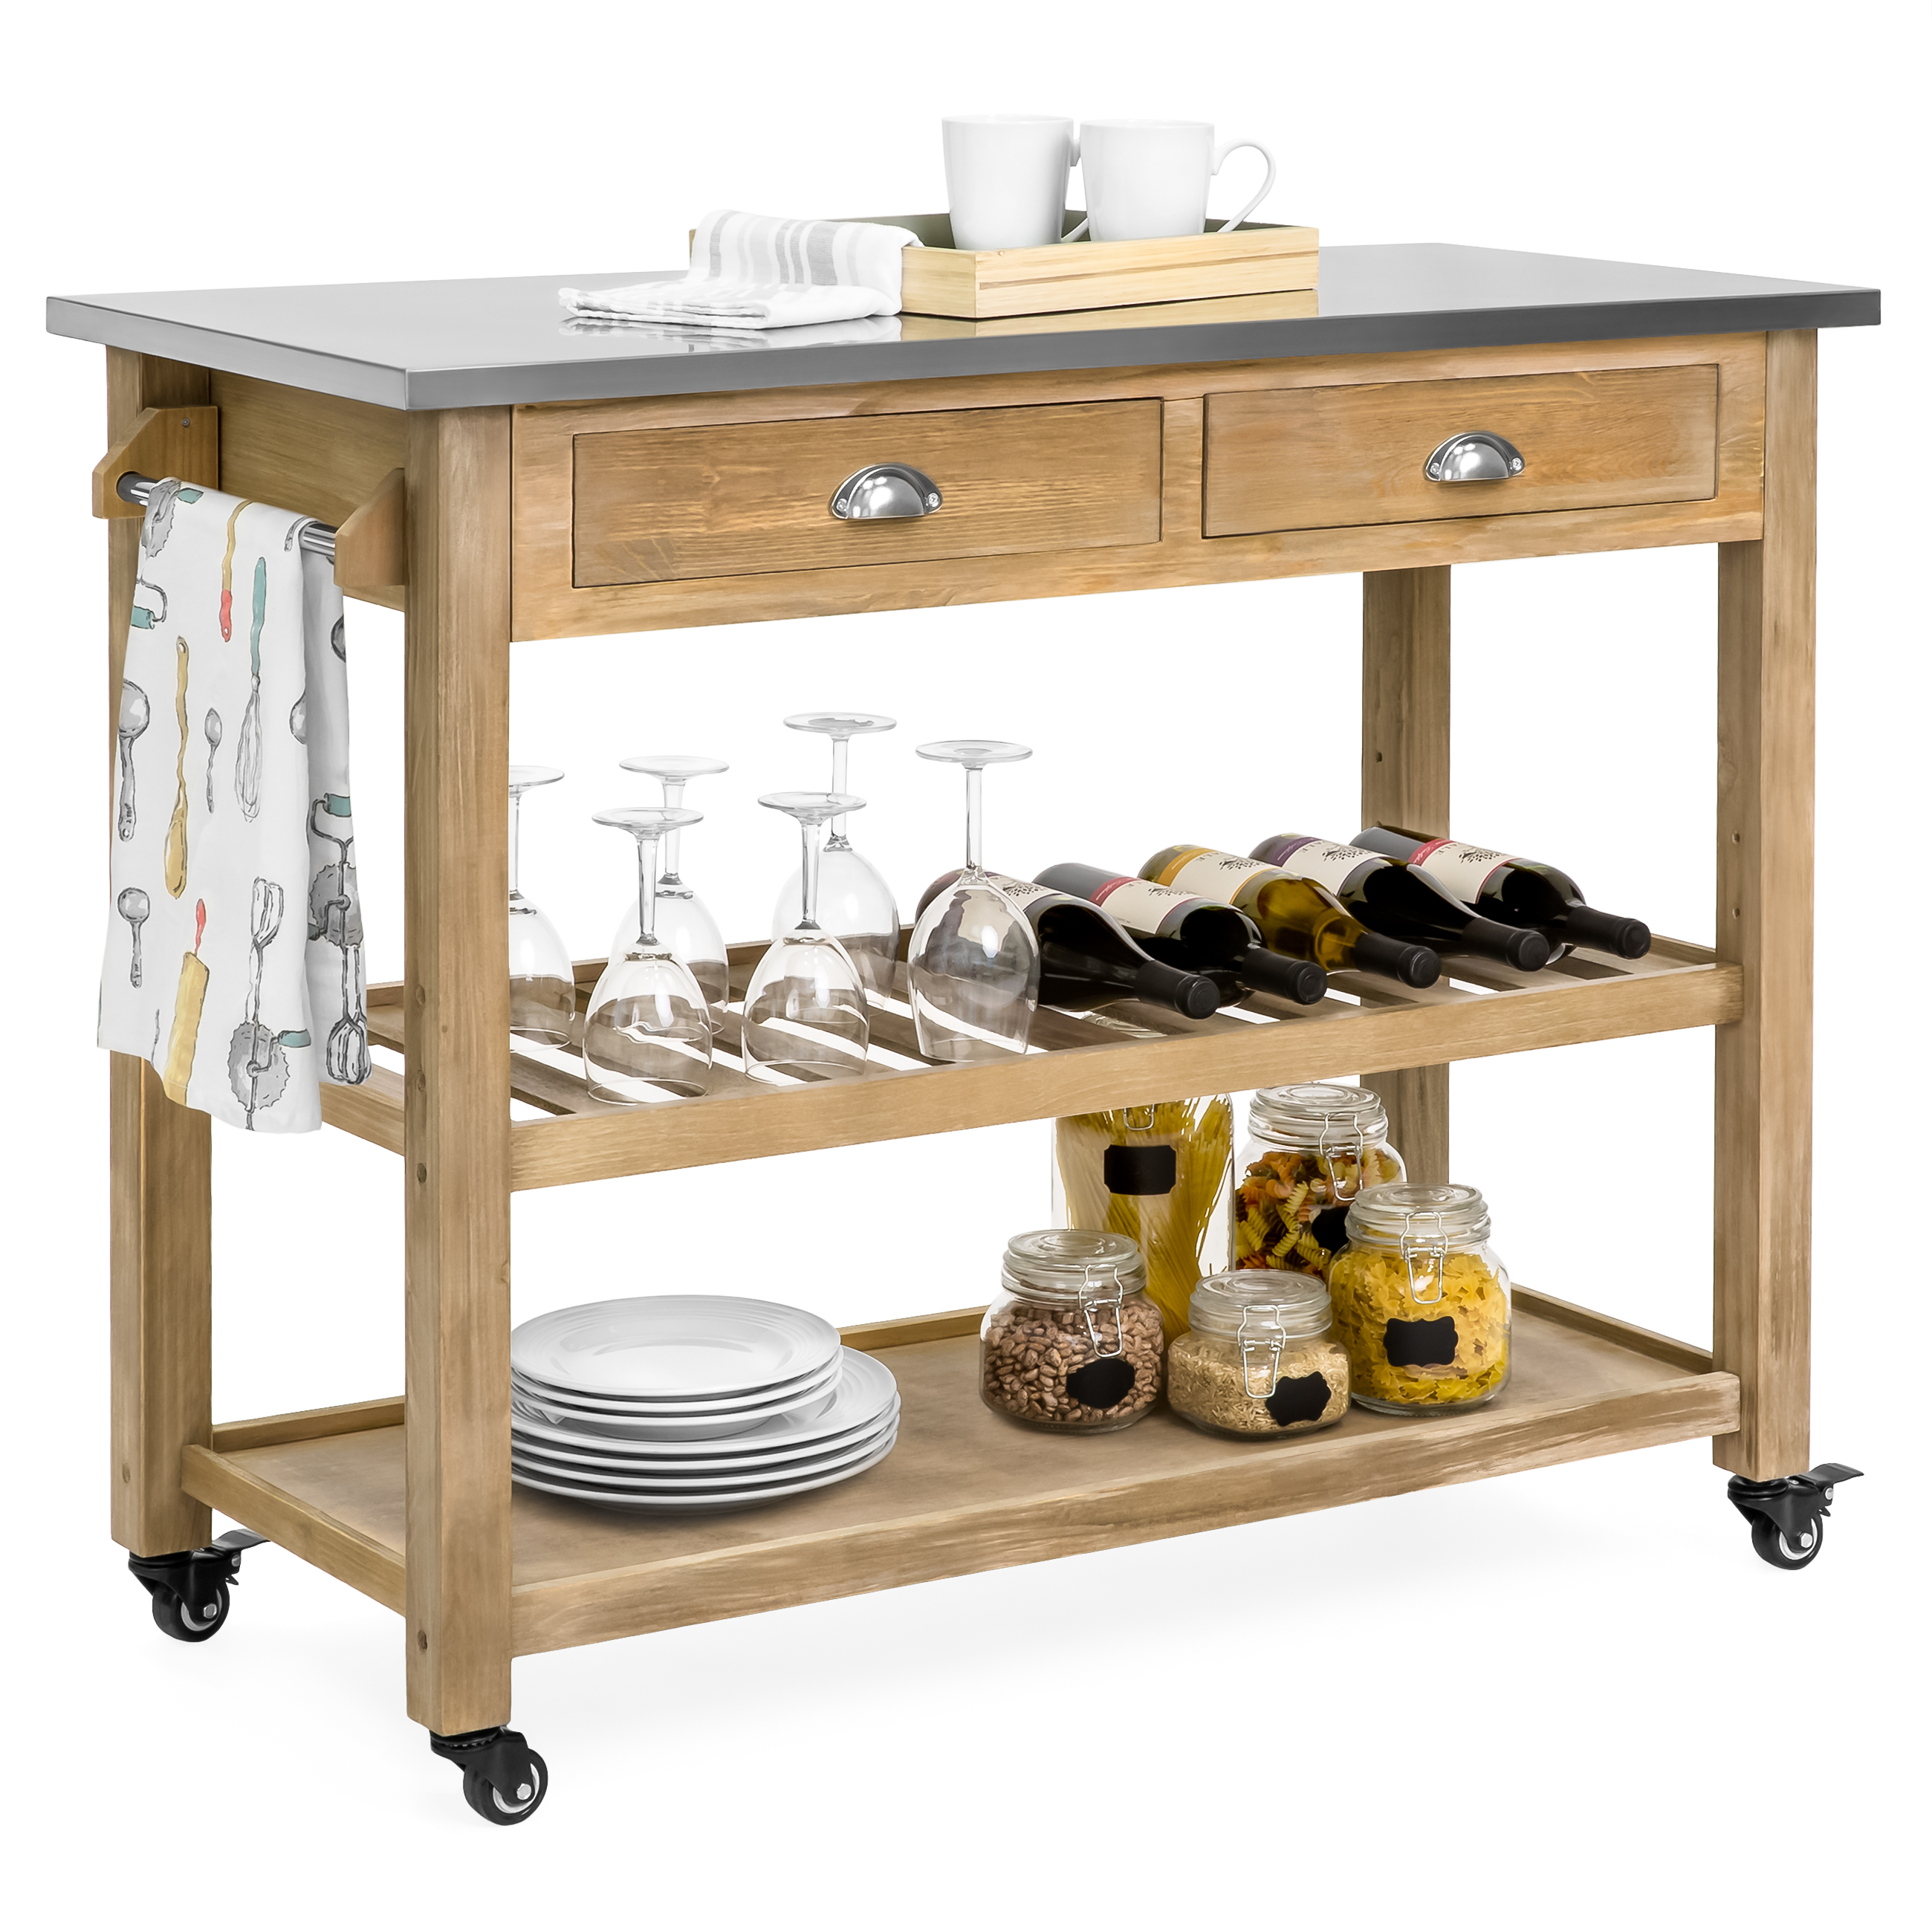 Best Choice Products Dining Kitchen Island Storage & Bar Cocktail Cart w/ Stainless Steel Top - Rustic Wood